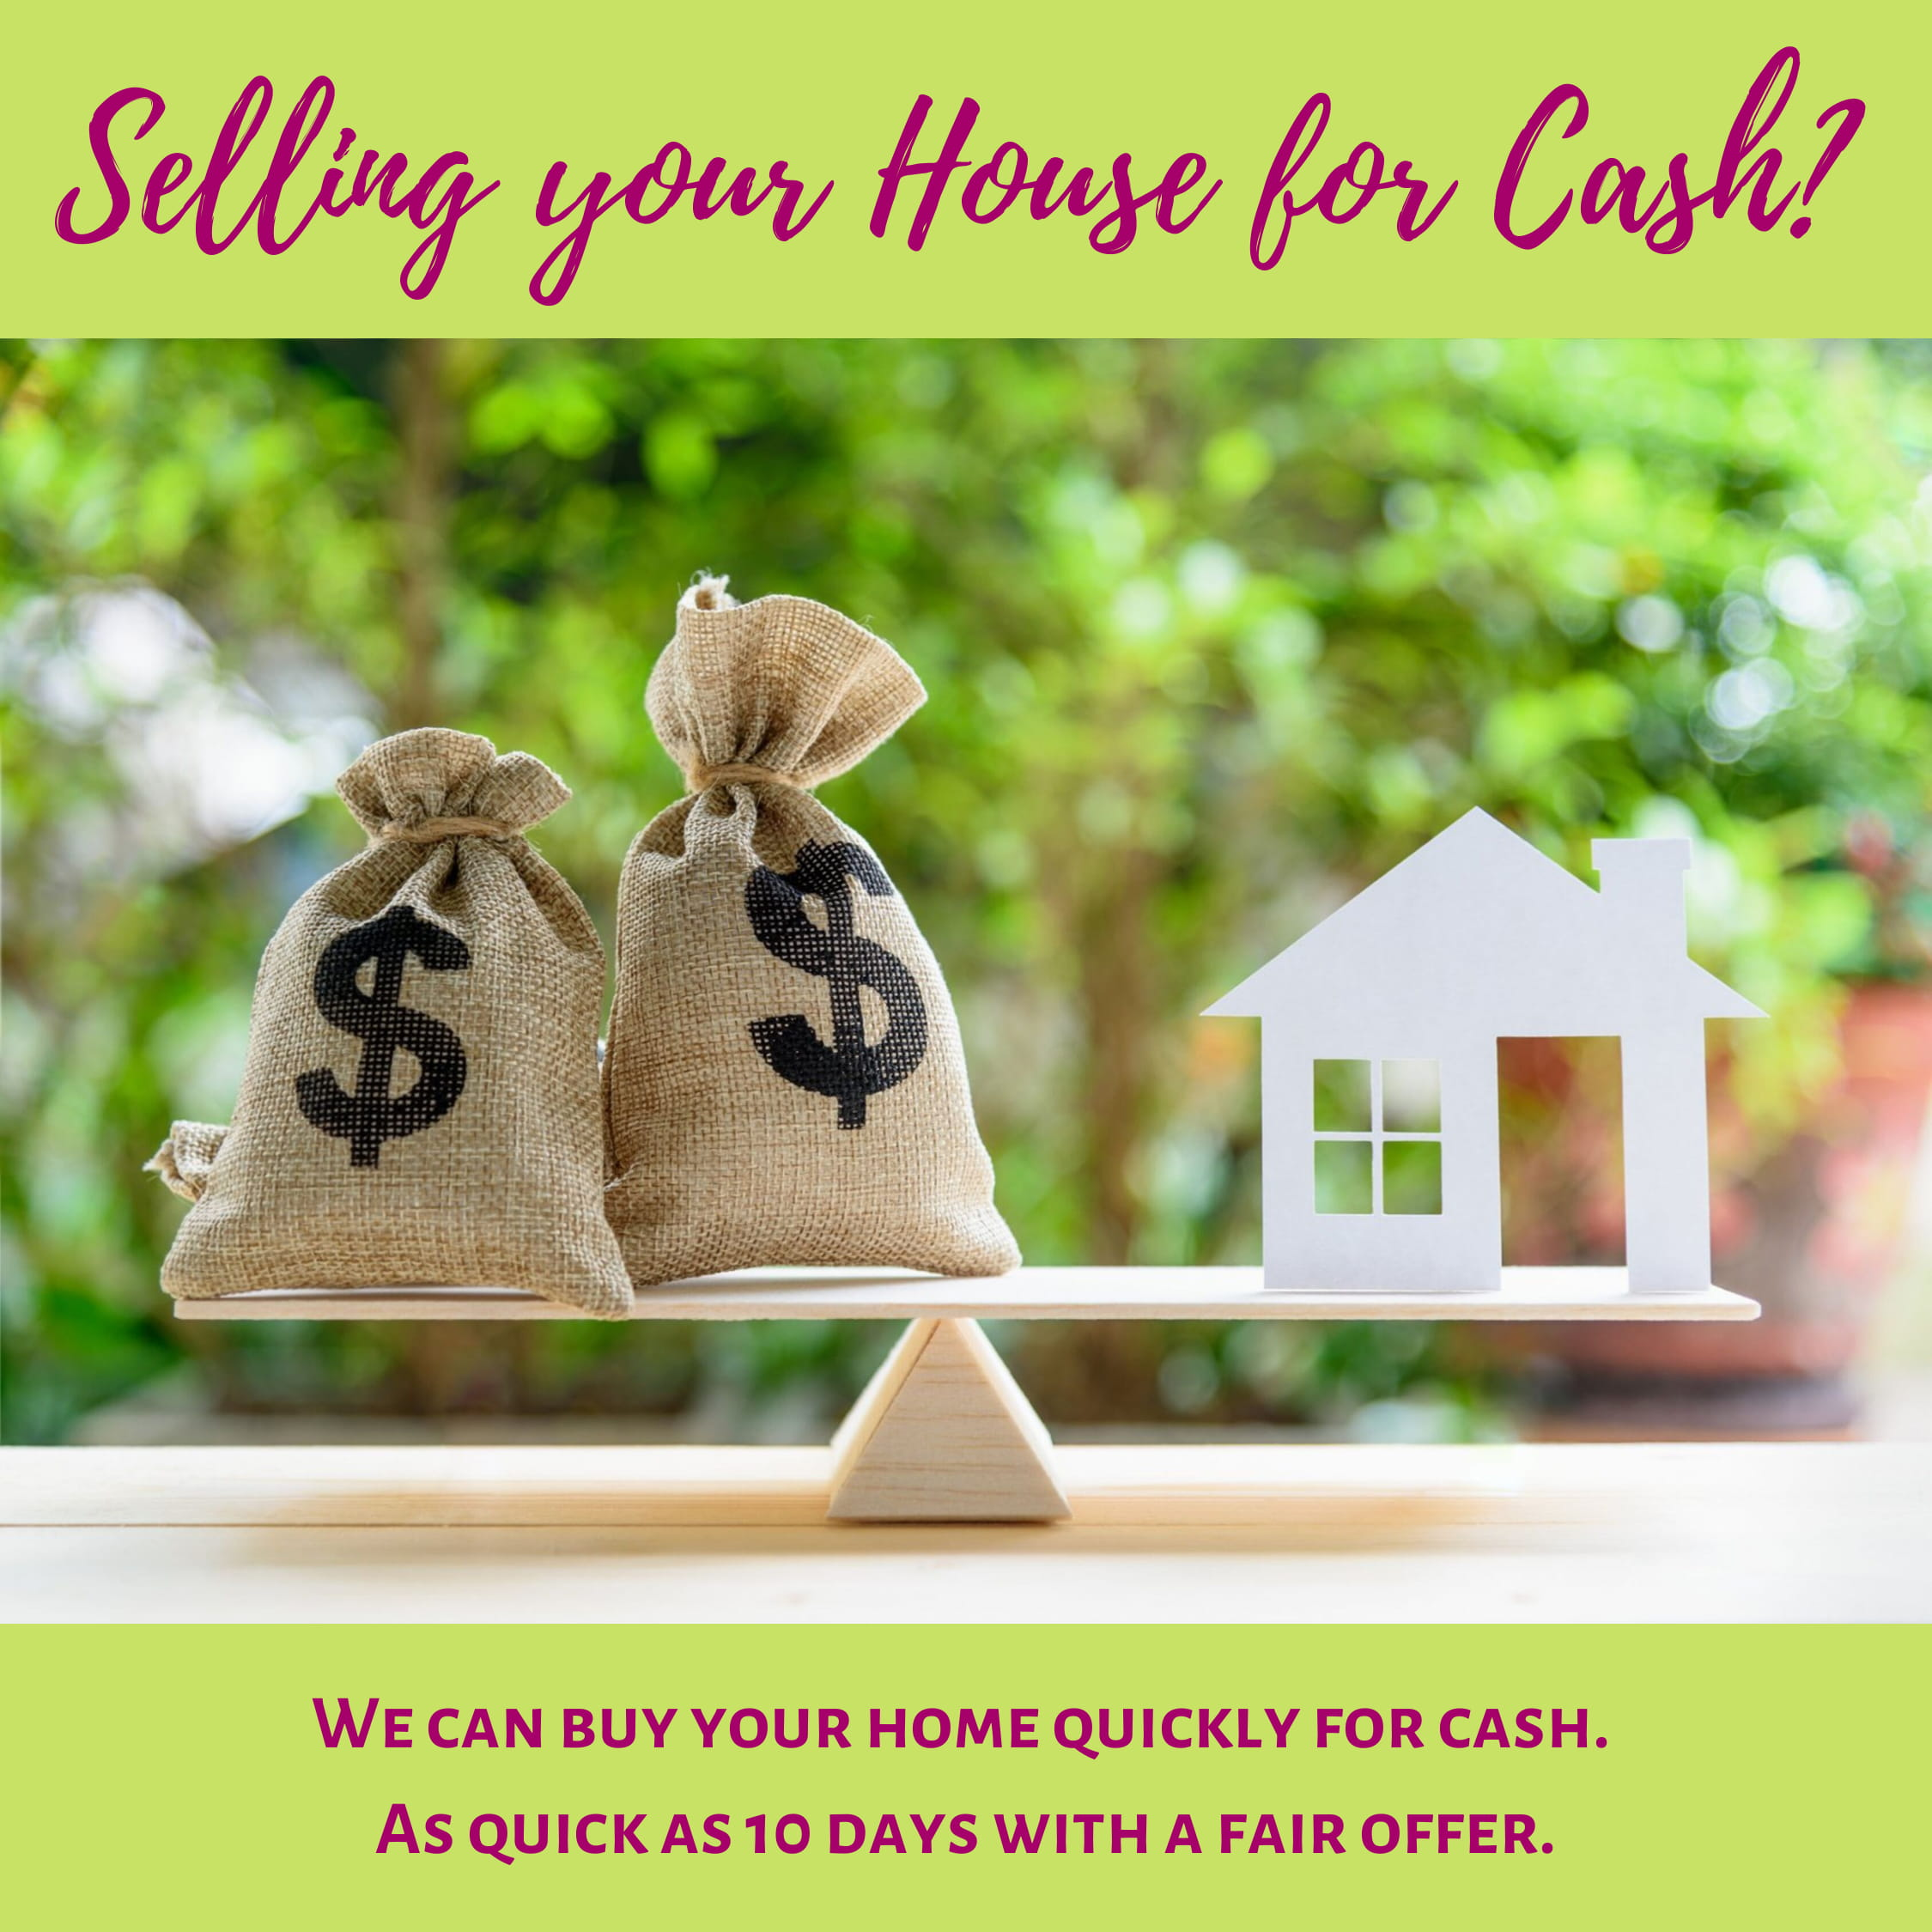 Selling your House for Cash_ Learn the Opportunities and Challenges-1